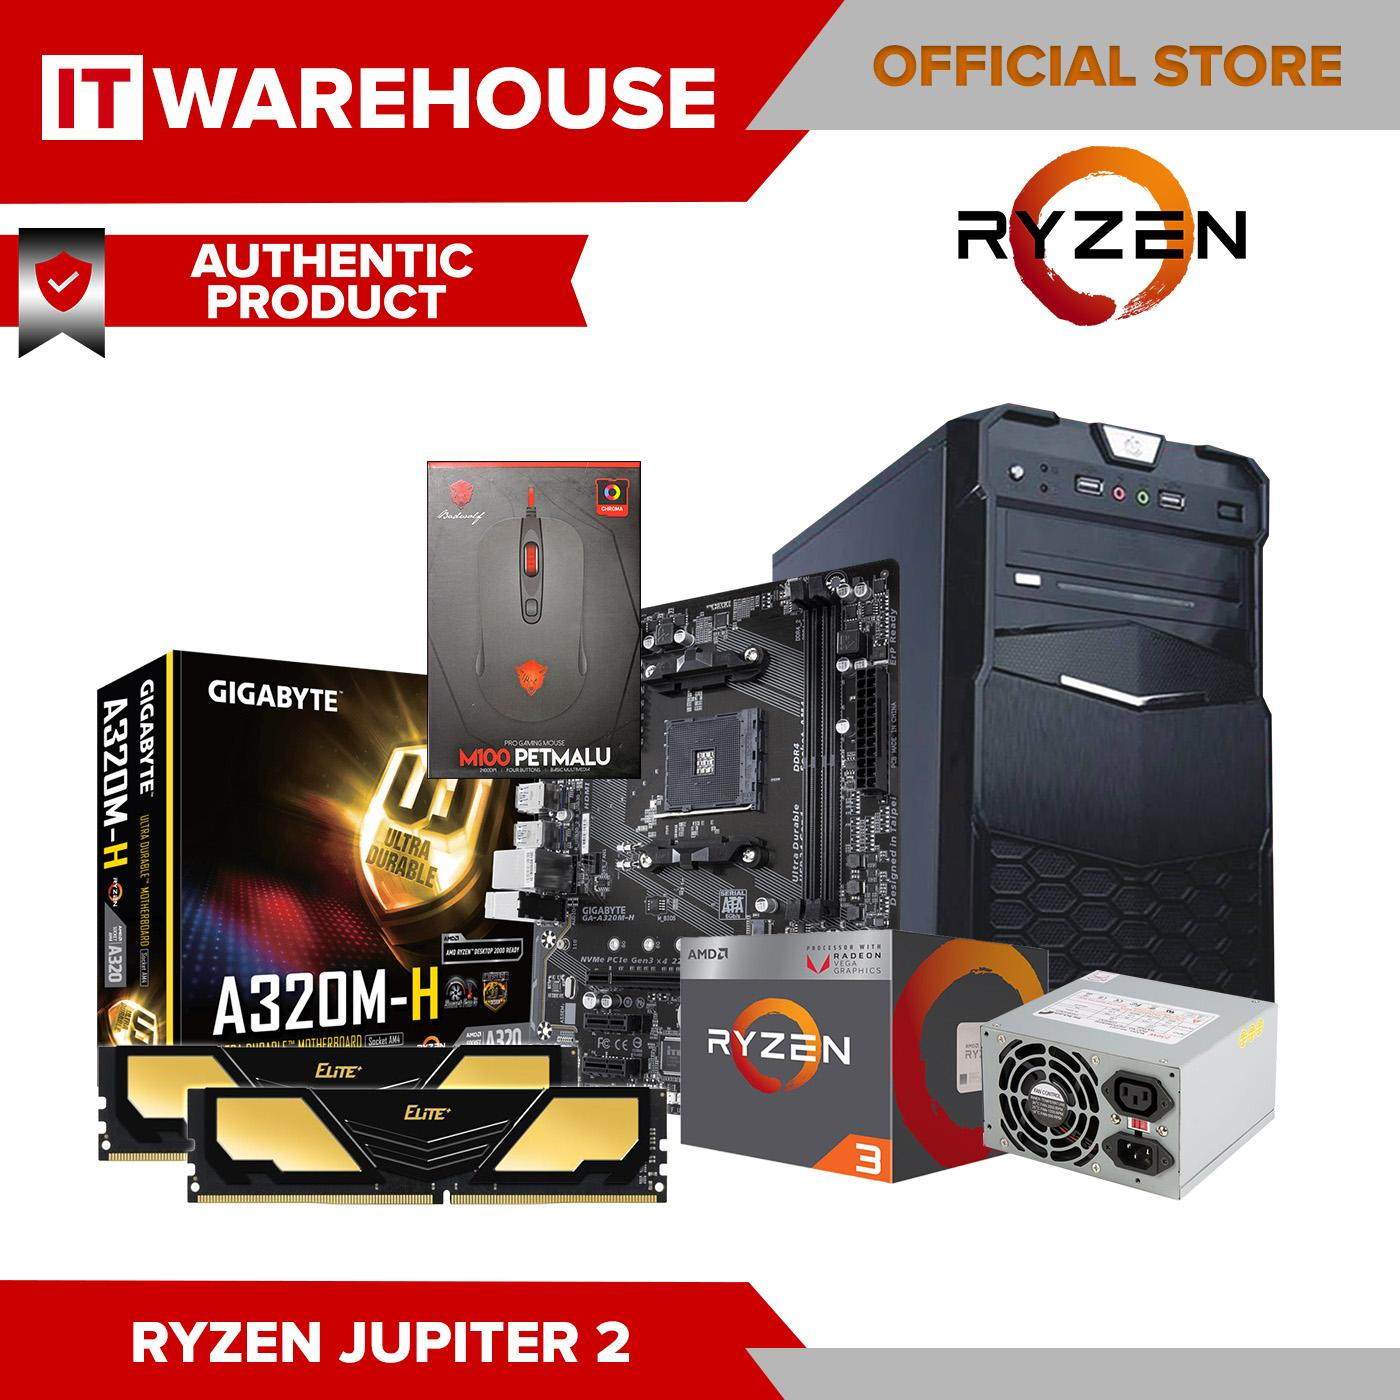 AMD Ryzen 3 2200G RYZ 3 VEGA JUPITER 2 Series Diskless System Quad-Core 3 5  GHz Socket AM4 65W with Radeon Vega 8 Graphics iGPU Desktop Processor